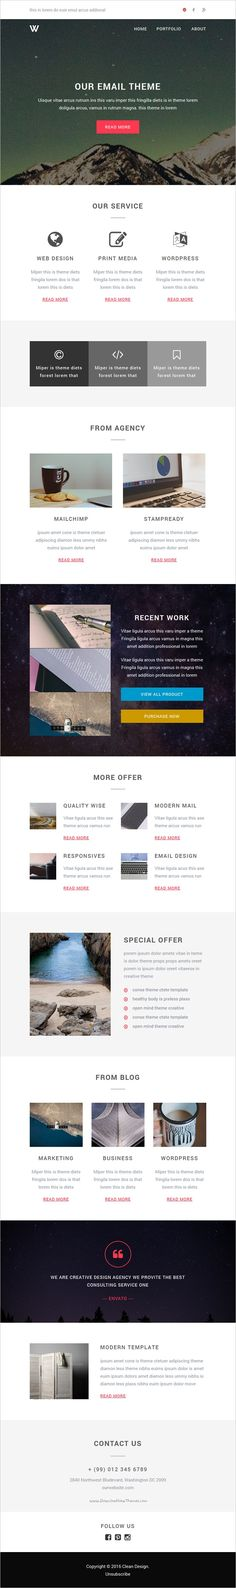 Astine u2013 Responsive Email + StampReady Builder \ Mailchimp Editor - email newsletter template